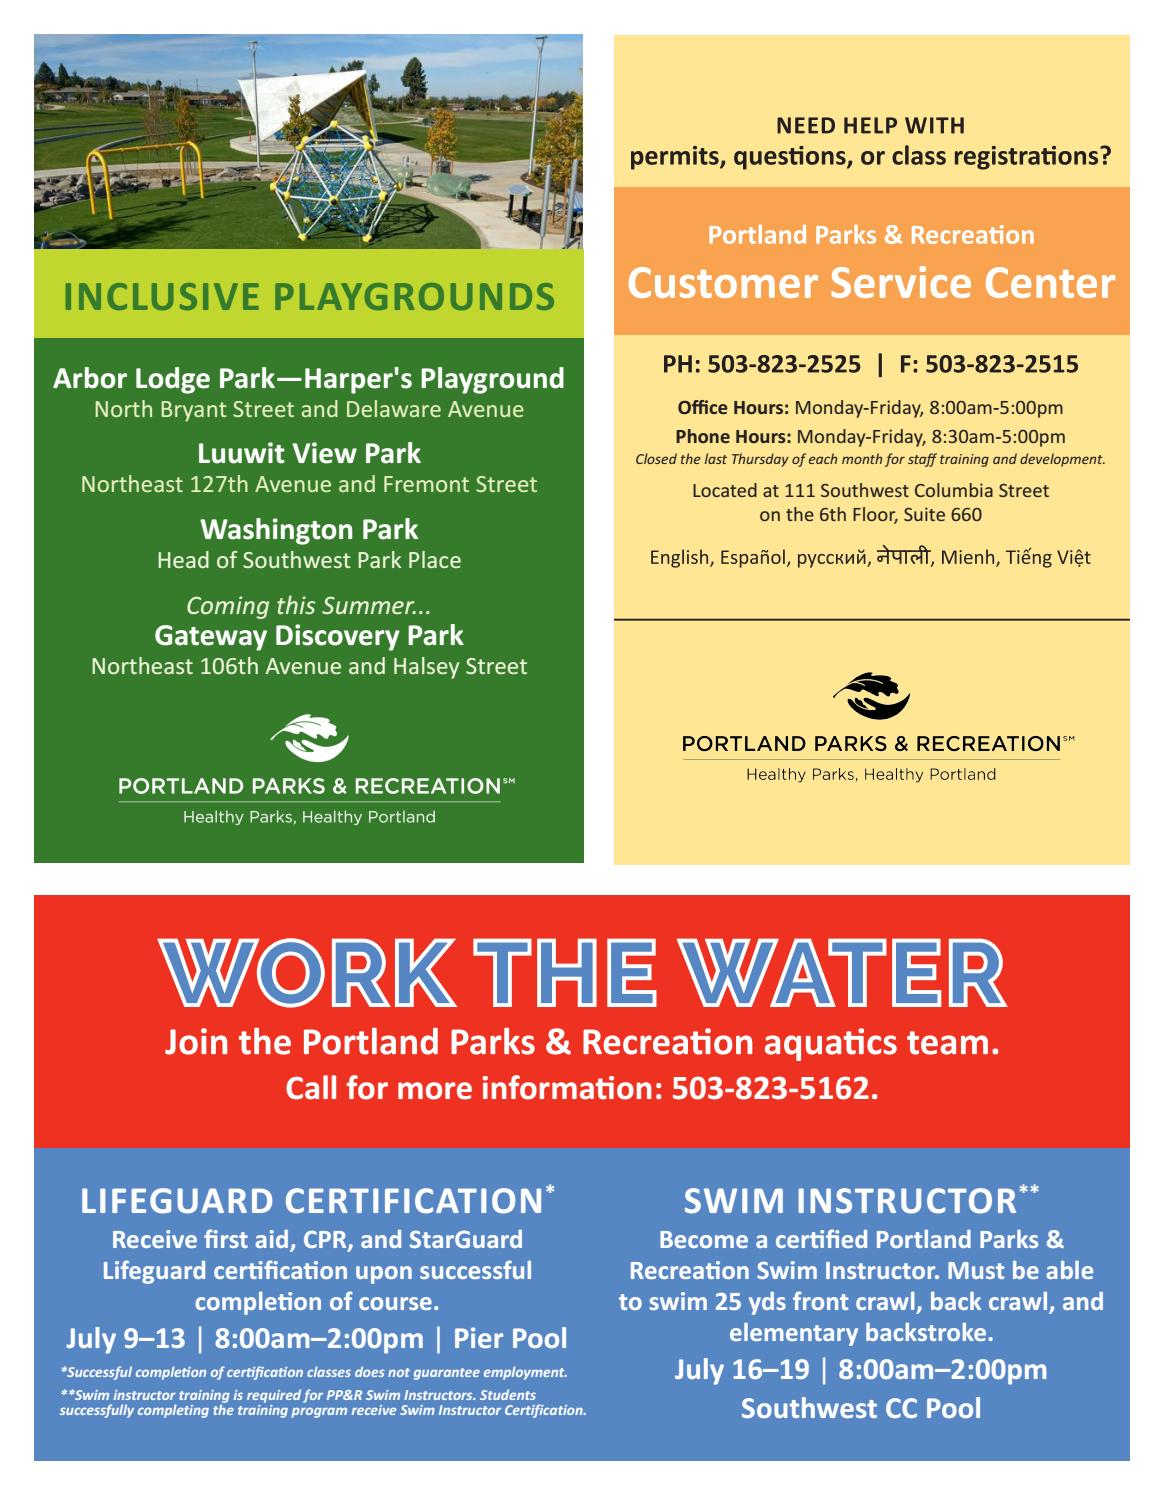 Southwest Community Center Summer Review 2018 By Portland Parks